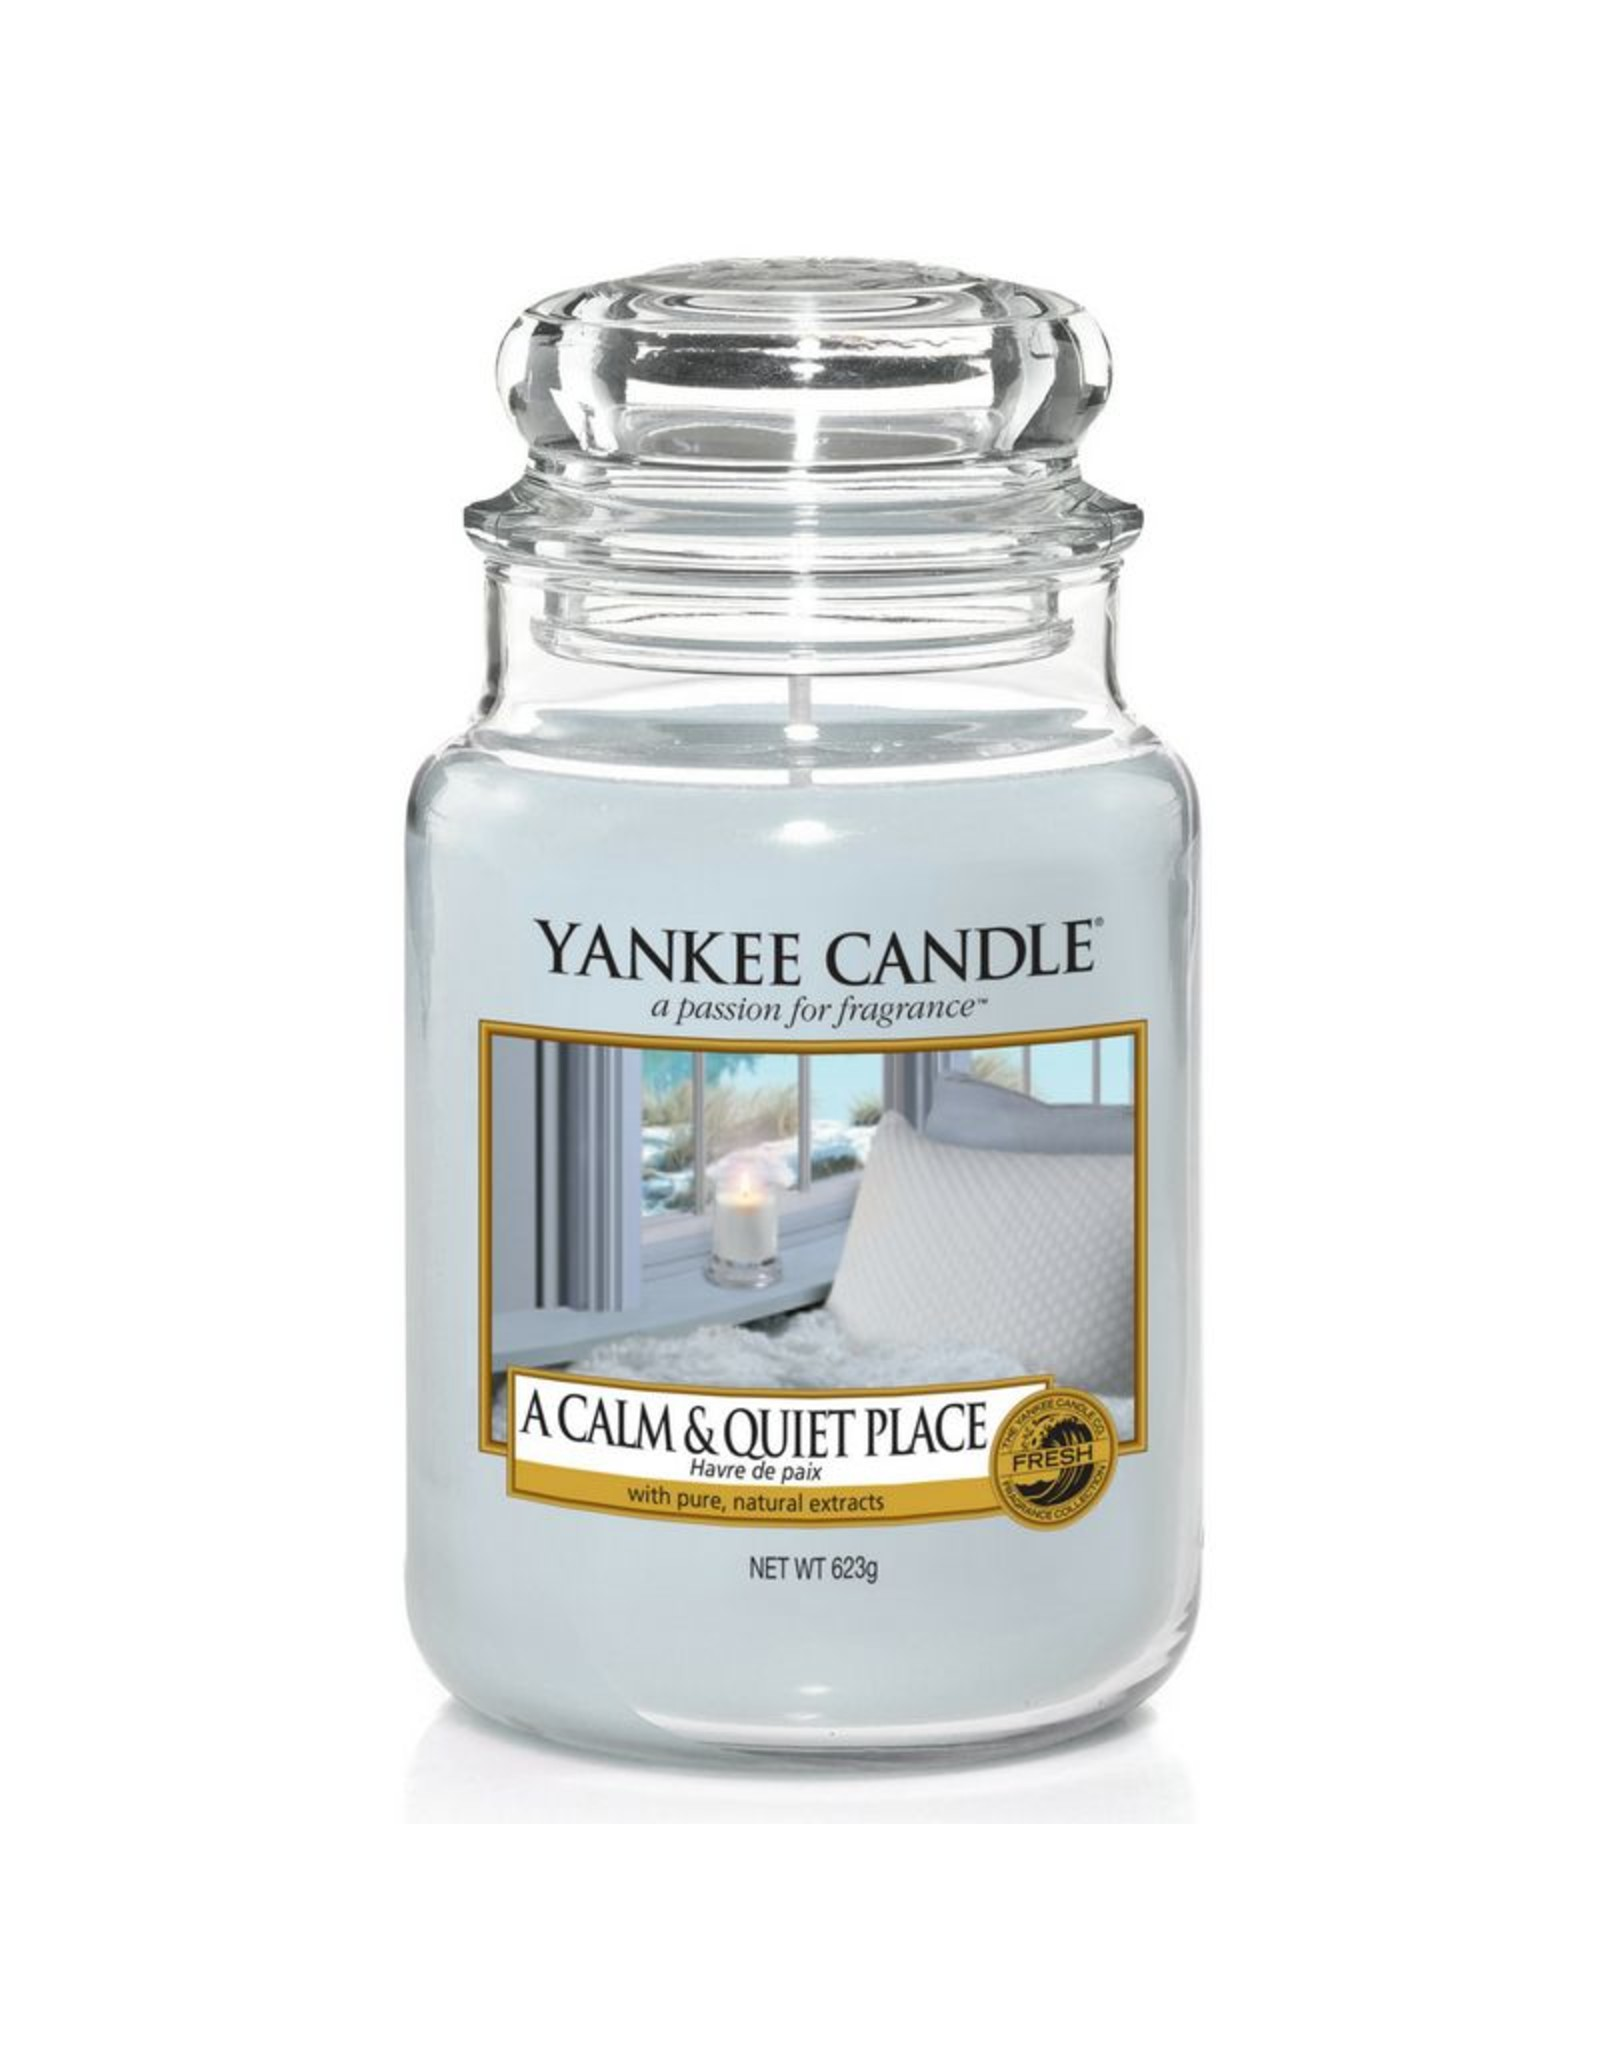 Yankee Candle A Calm and Quiet Place - Large Jar